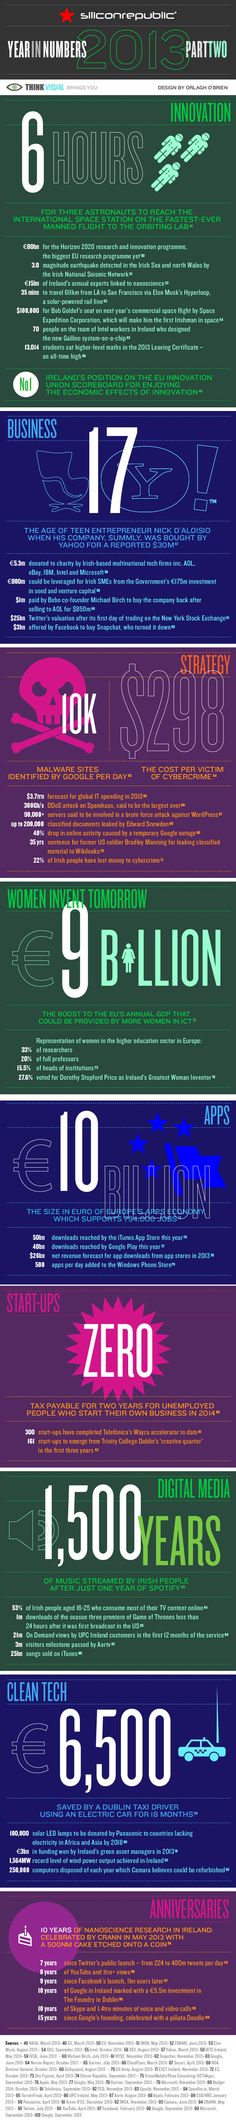 100 Most Startling Facts, Figures and Staistics From 2013 [INFOGRAPHIC]  Part 2